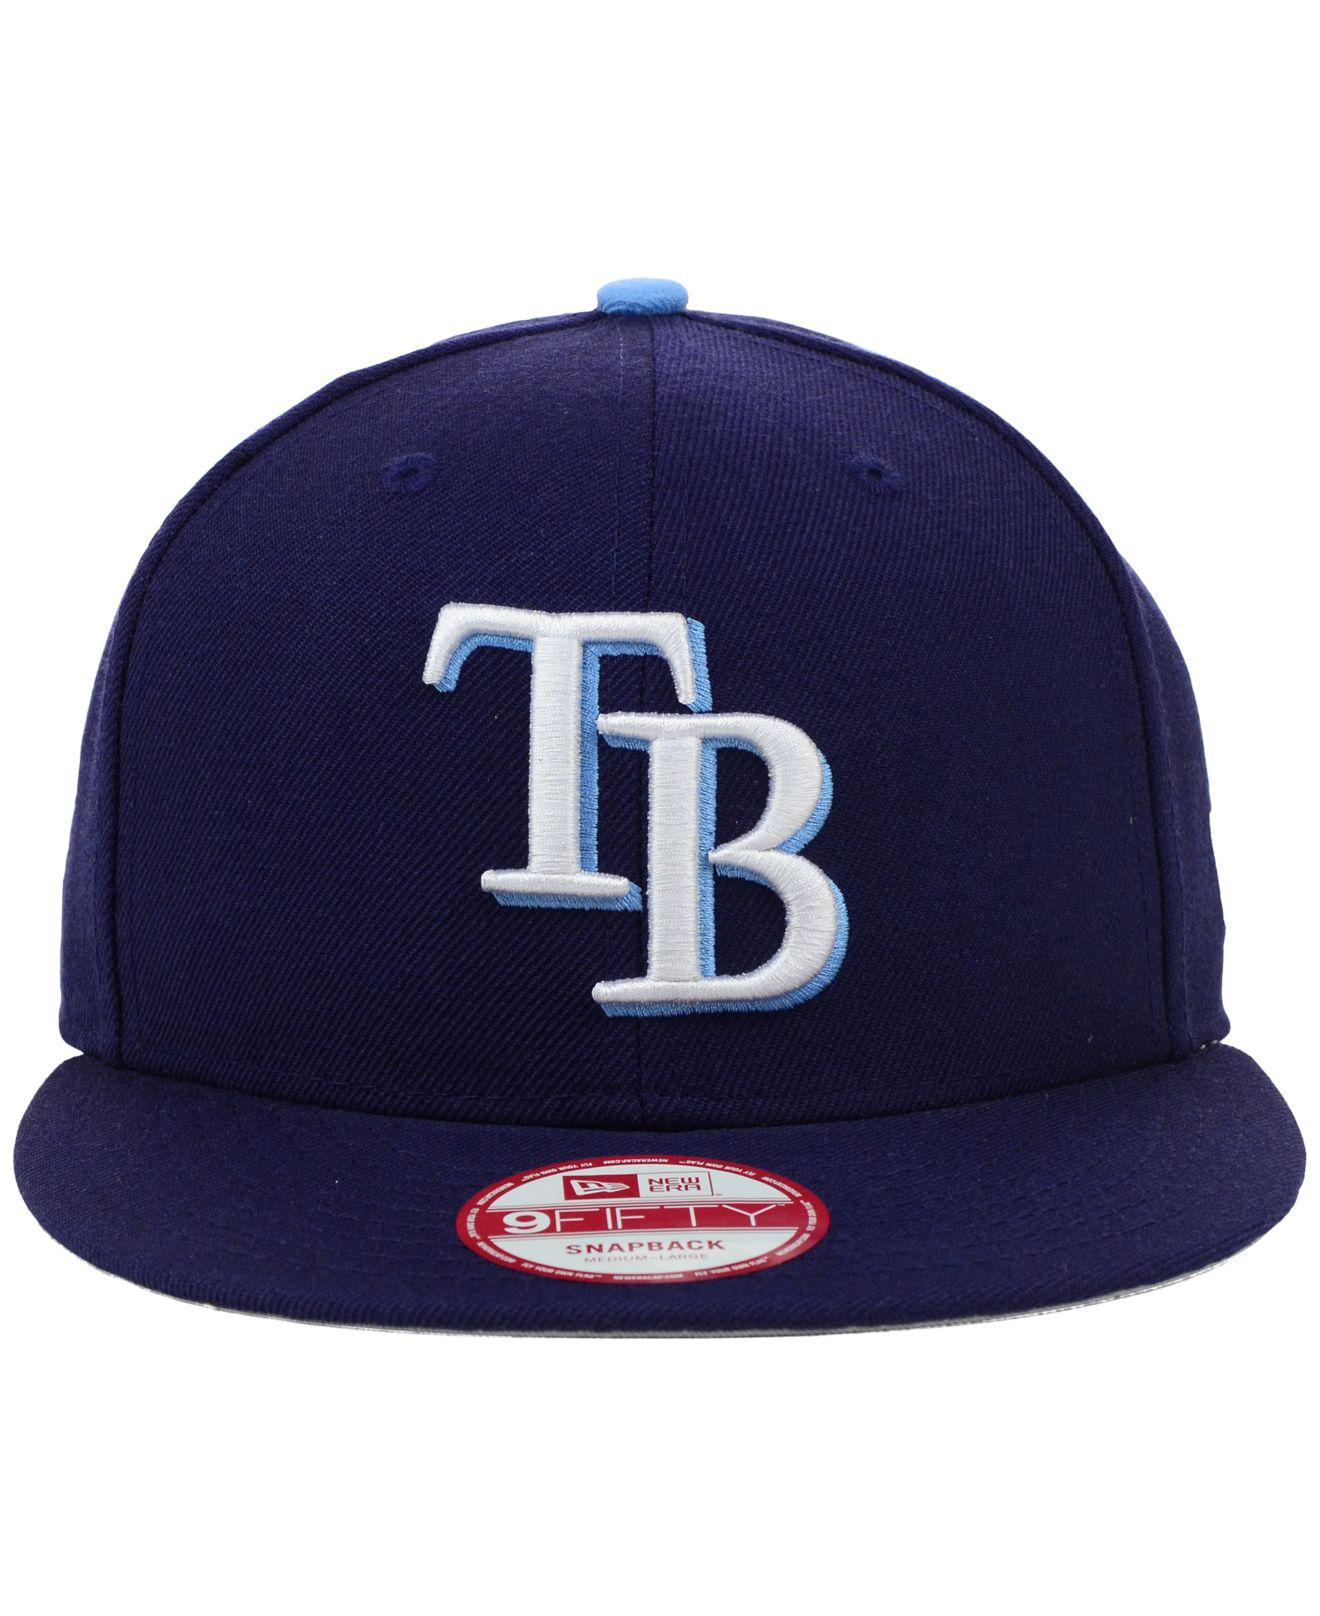 660ddd2e1ef4f Lyst - KTZ Tampa Bay Rays Mlb 2 Tone Link 9fifty Snapback Cap in Blue for  Men